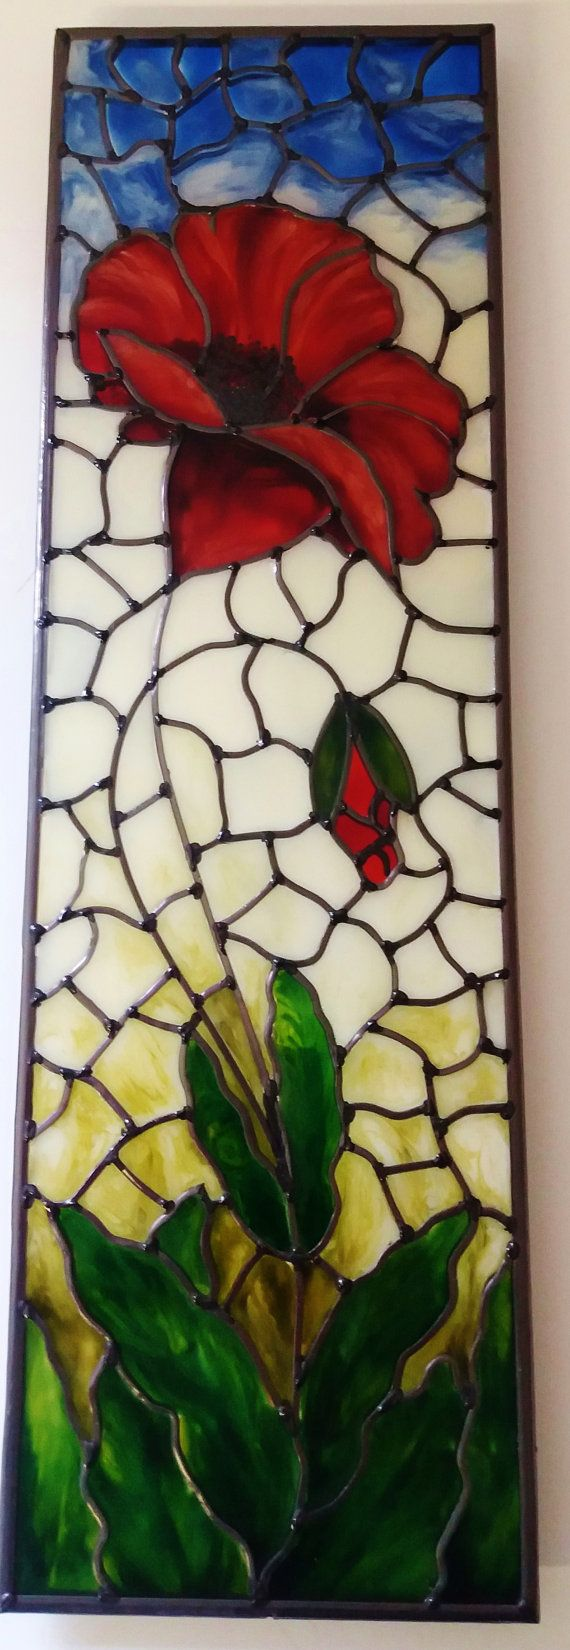 A bespoke Art Nouveau ~ 1920s Tiffany style inspired, stained glass ...